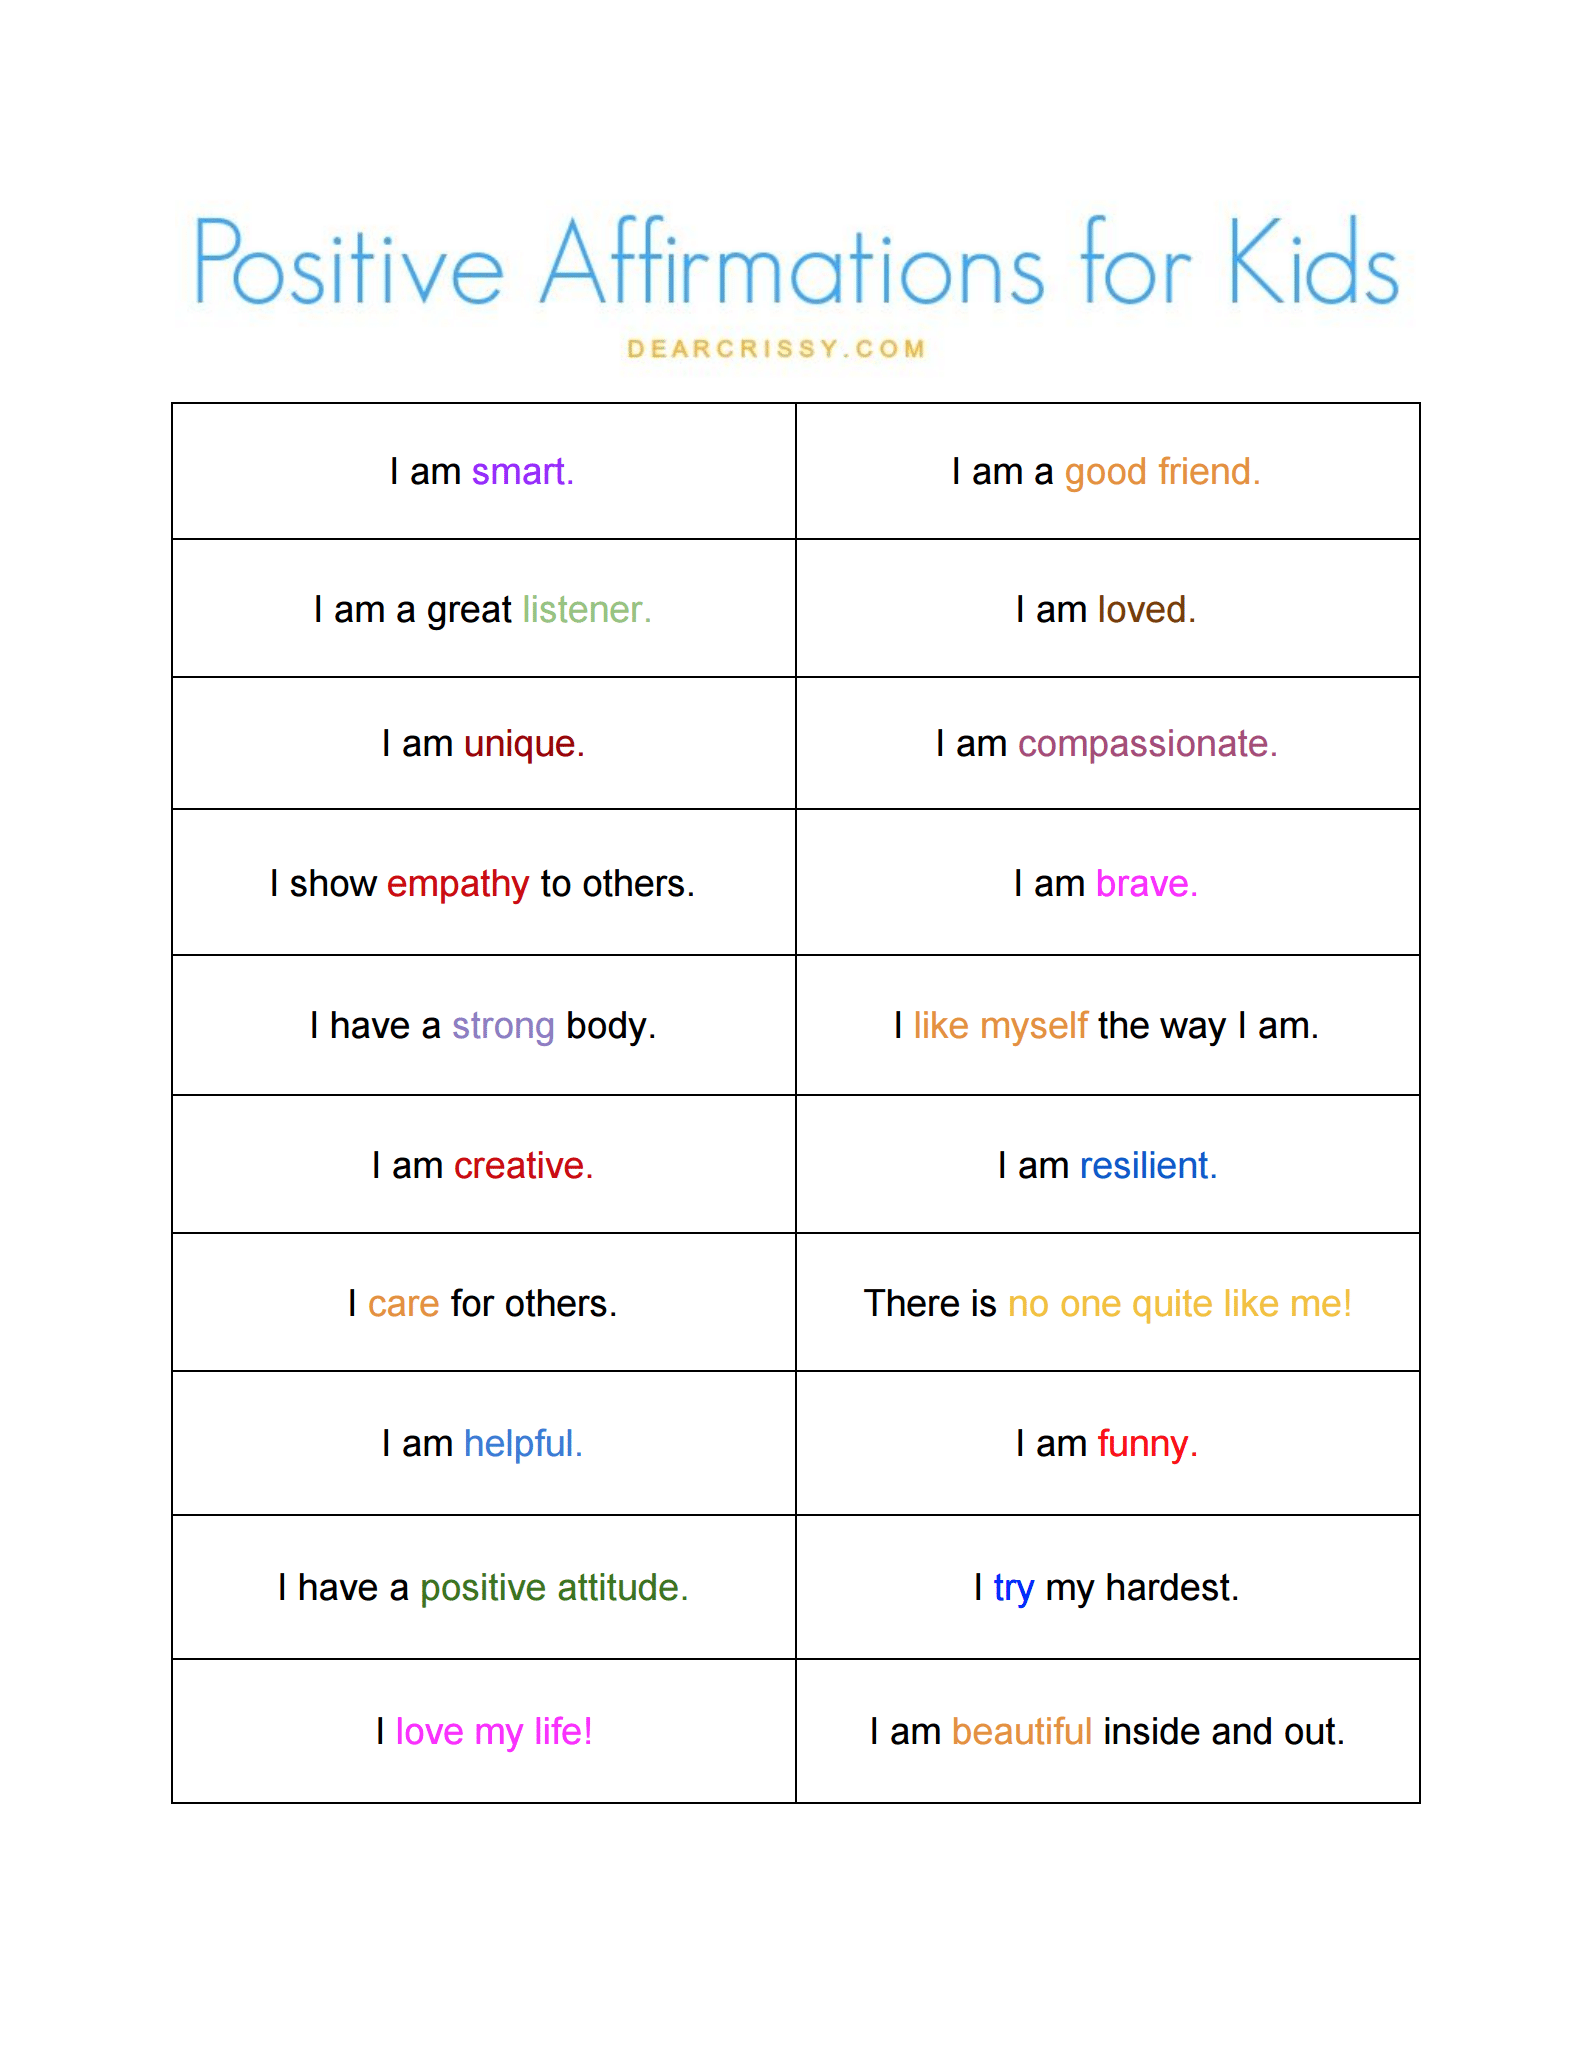 Positive Affirmations For Kids Free Printable